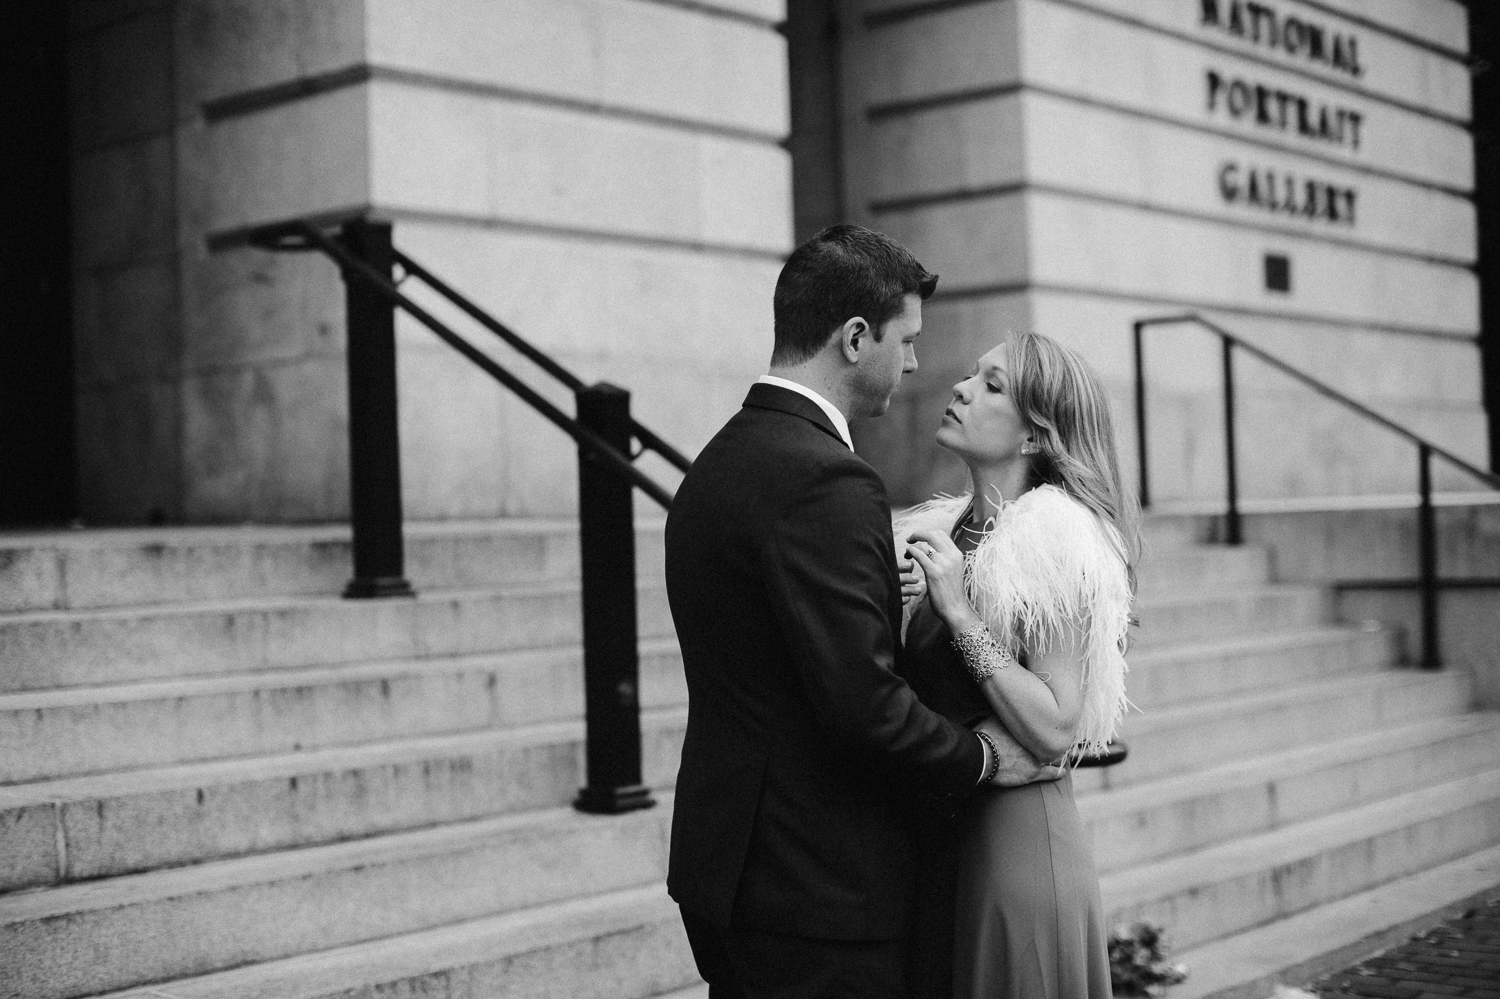 washington-dc-portrait-gallery-elopement-wedding-photography 38.jpg